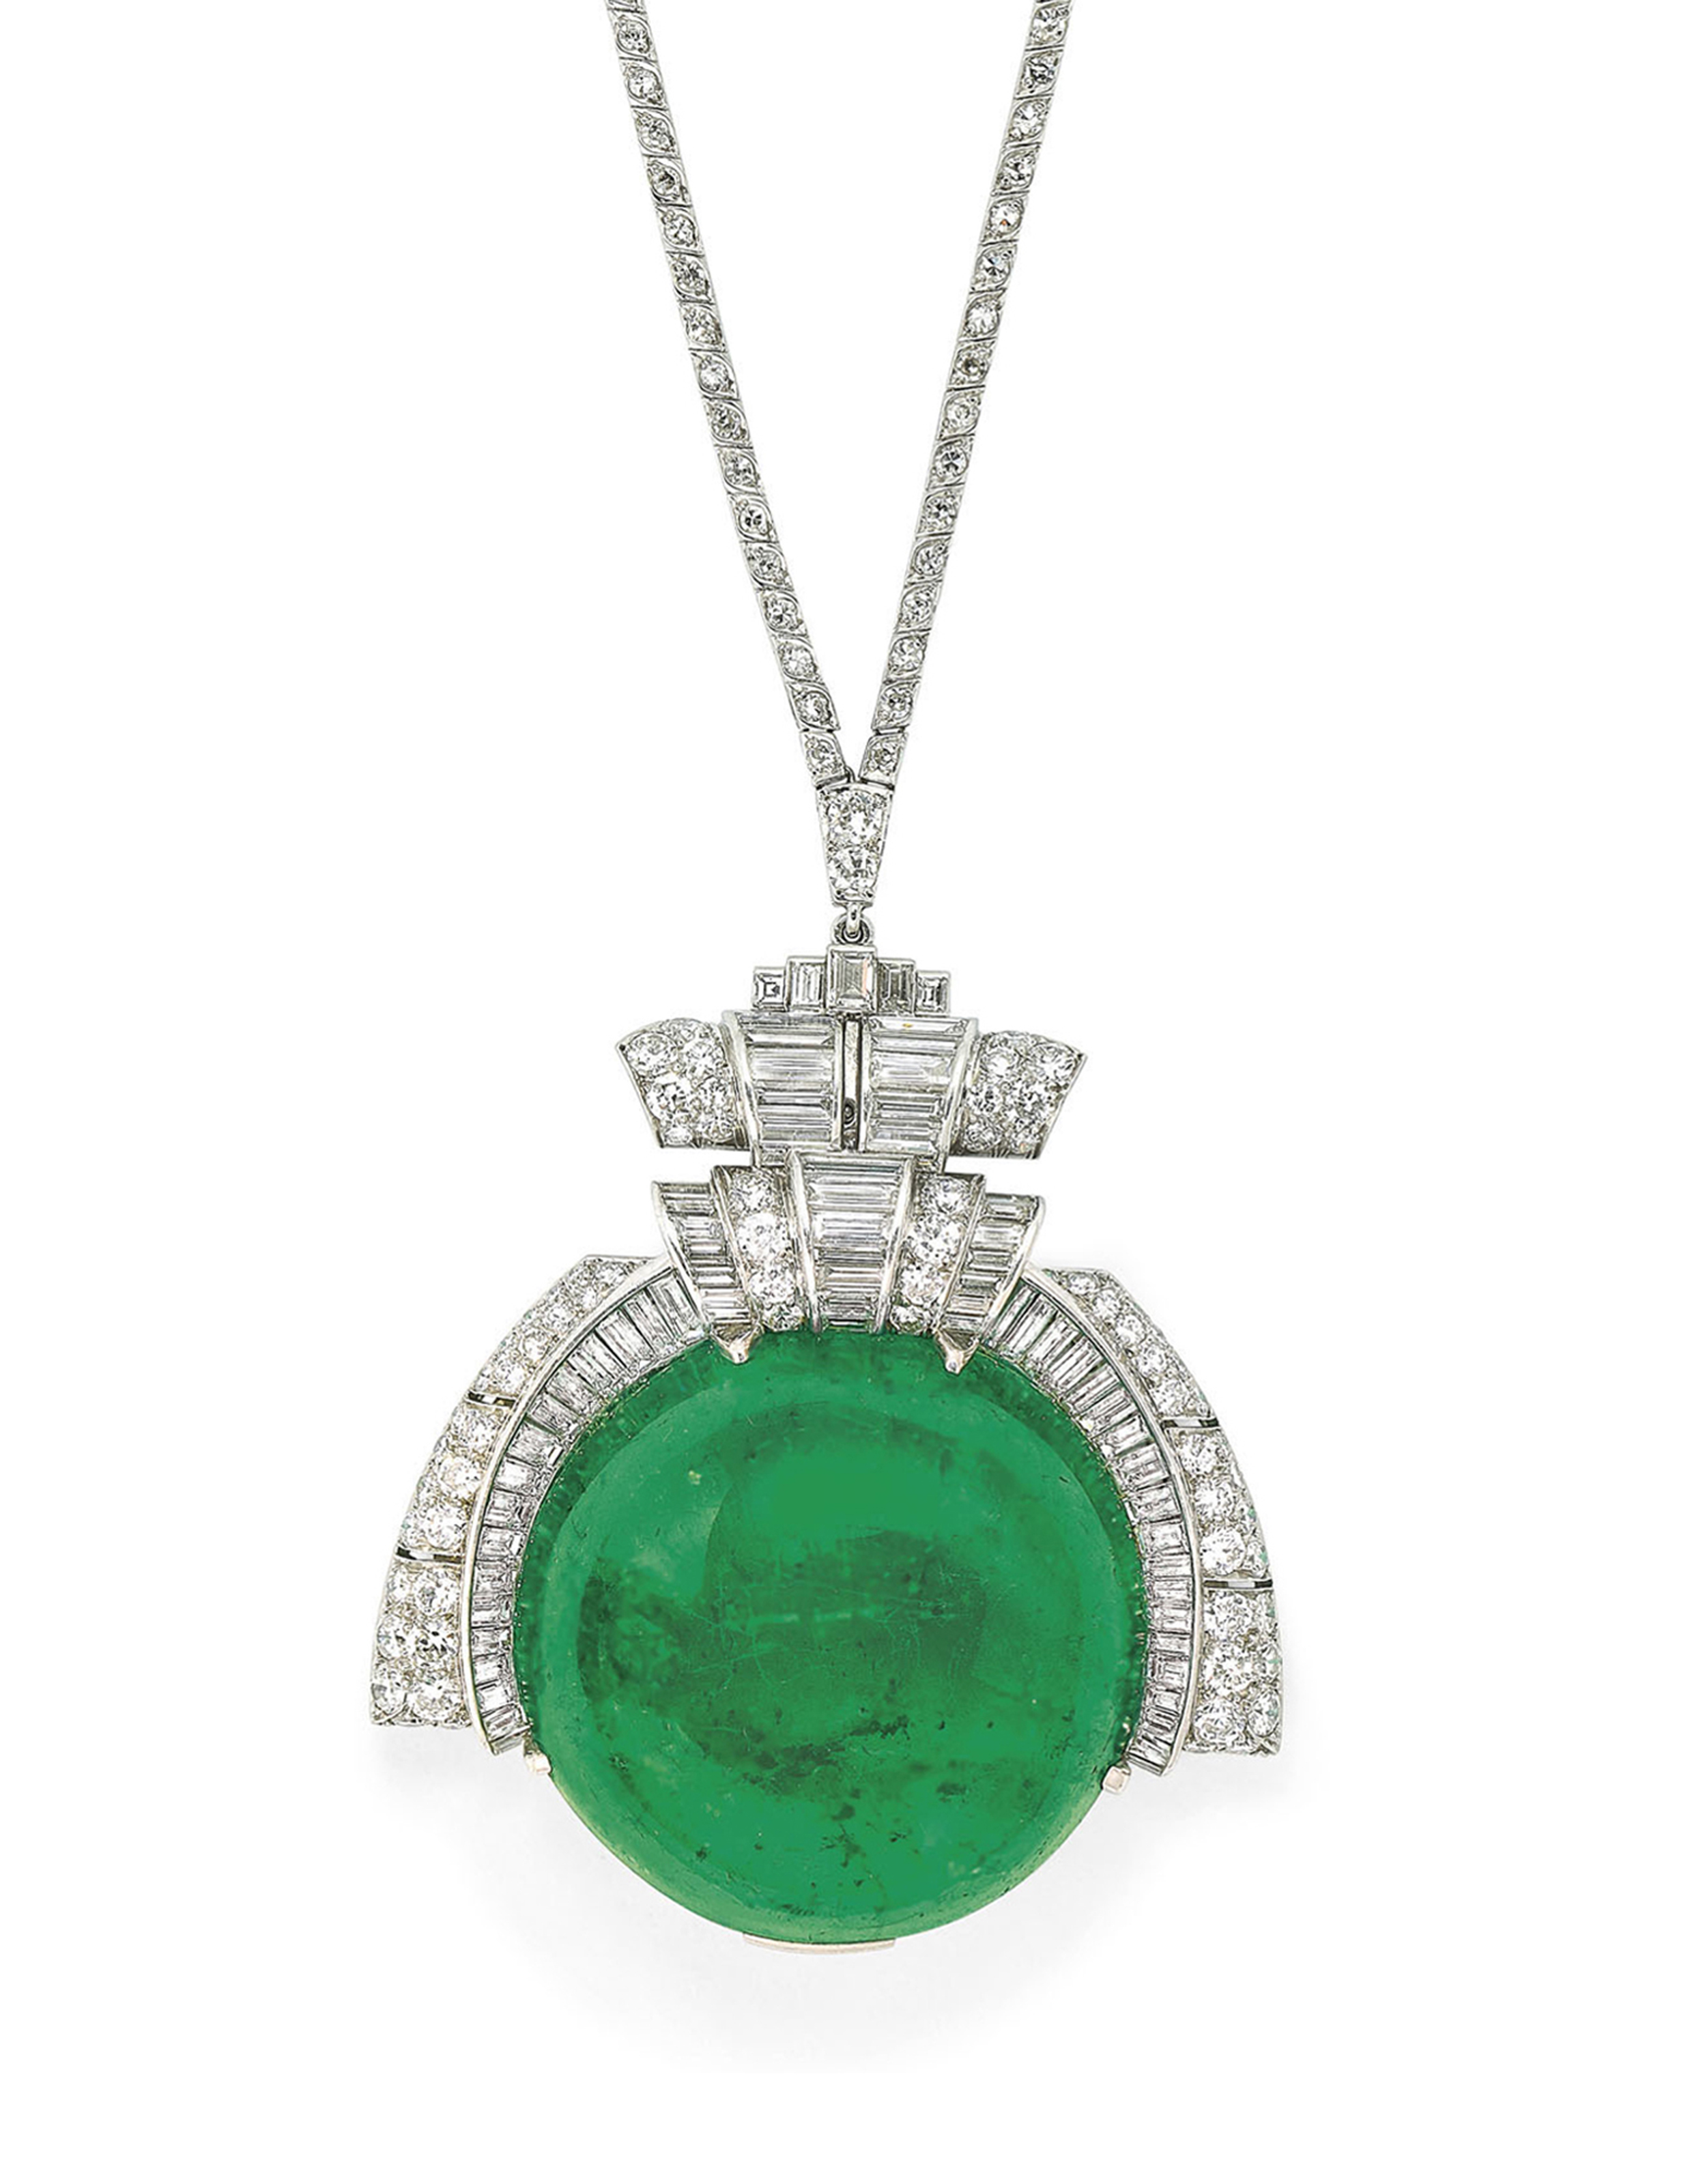 MID-20TH CENTURY EMERALD AND DIAMOND PENDENT NECKLACE